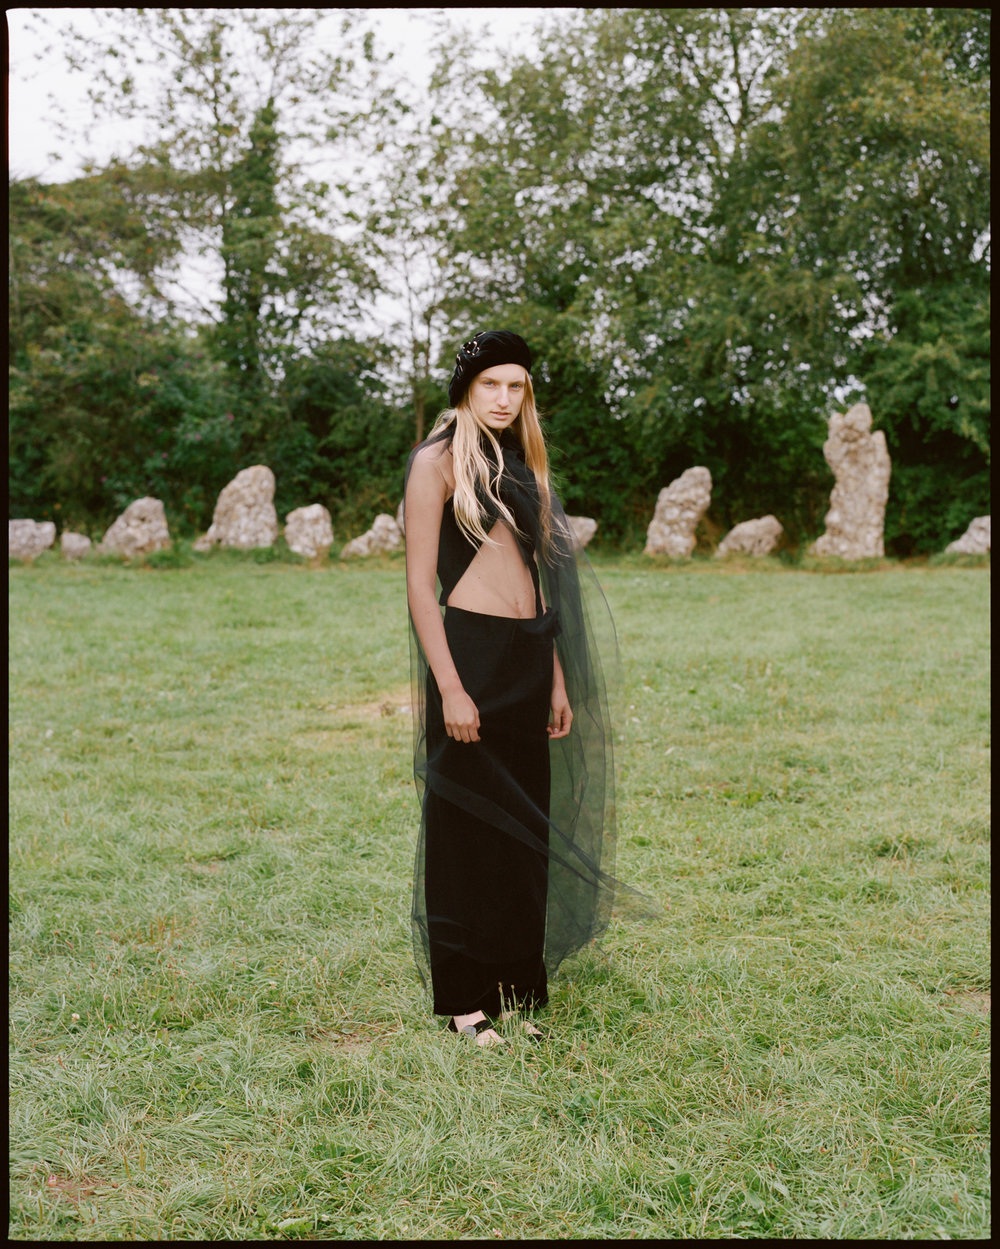 amber_mahoney_lula_japan_english_countryside_fashion_editorial_film_018.jpg